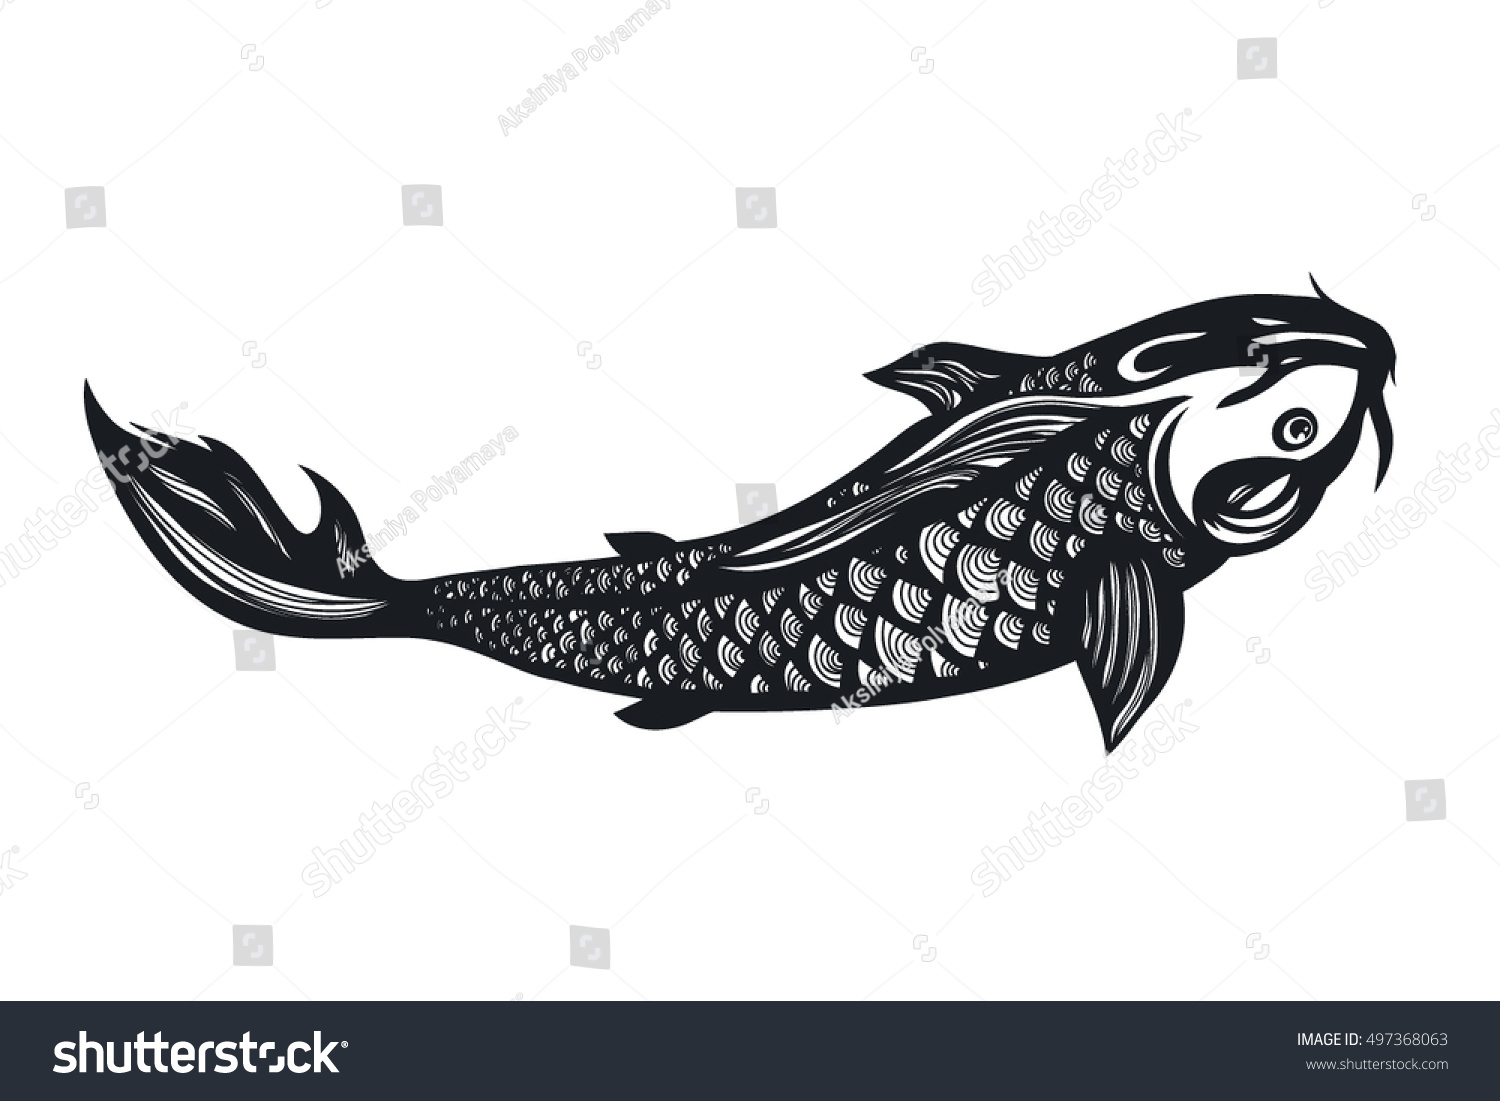 Fish koi carp chinese symbol good stock vector 497368063 chinese symbol of good luck courage persistence perseverance buycottarizona